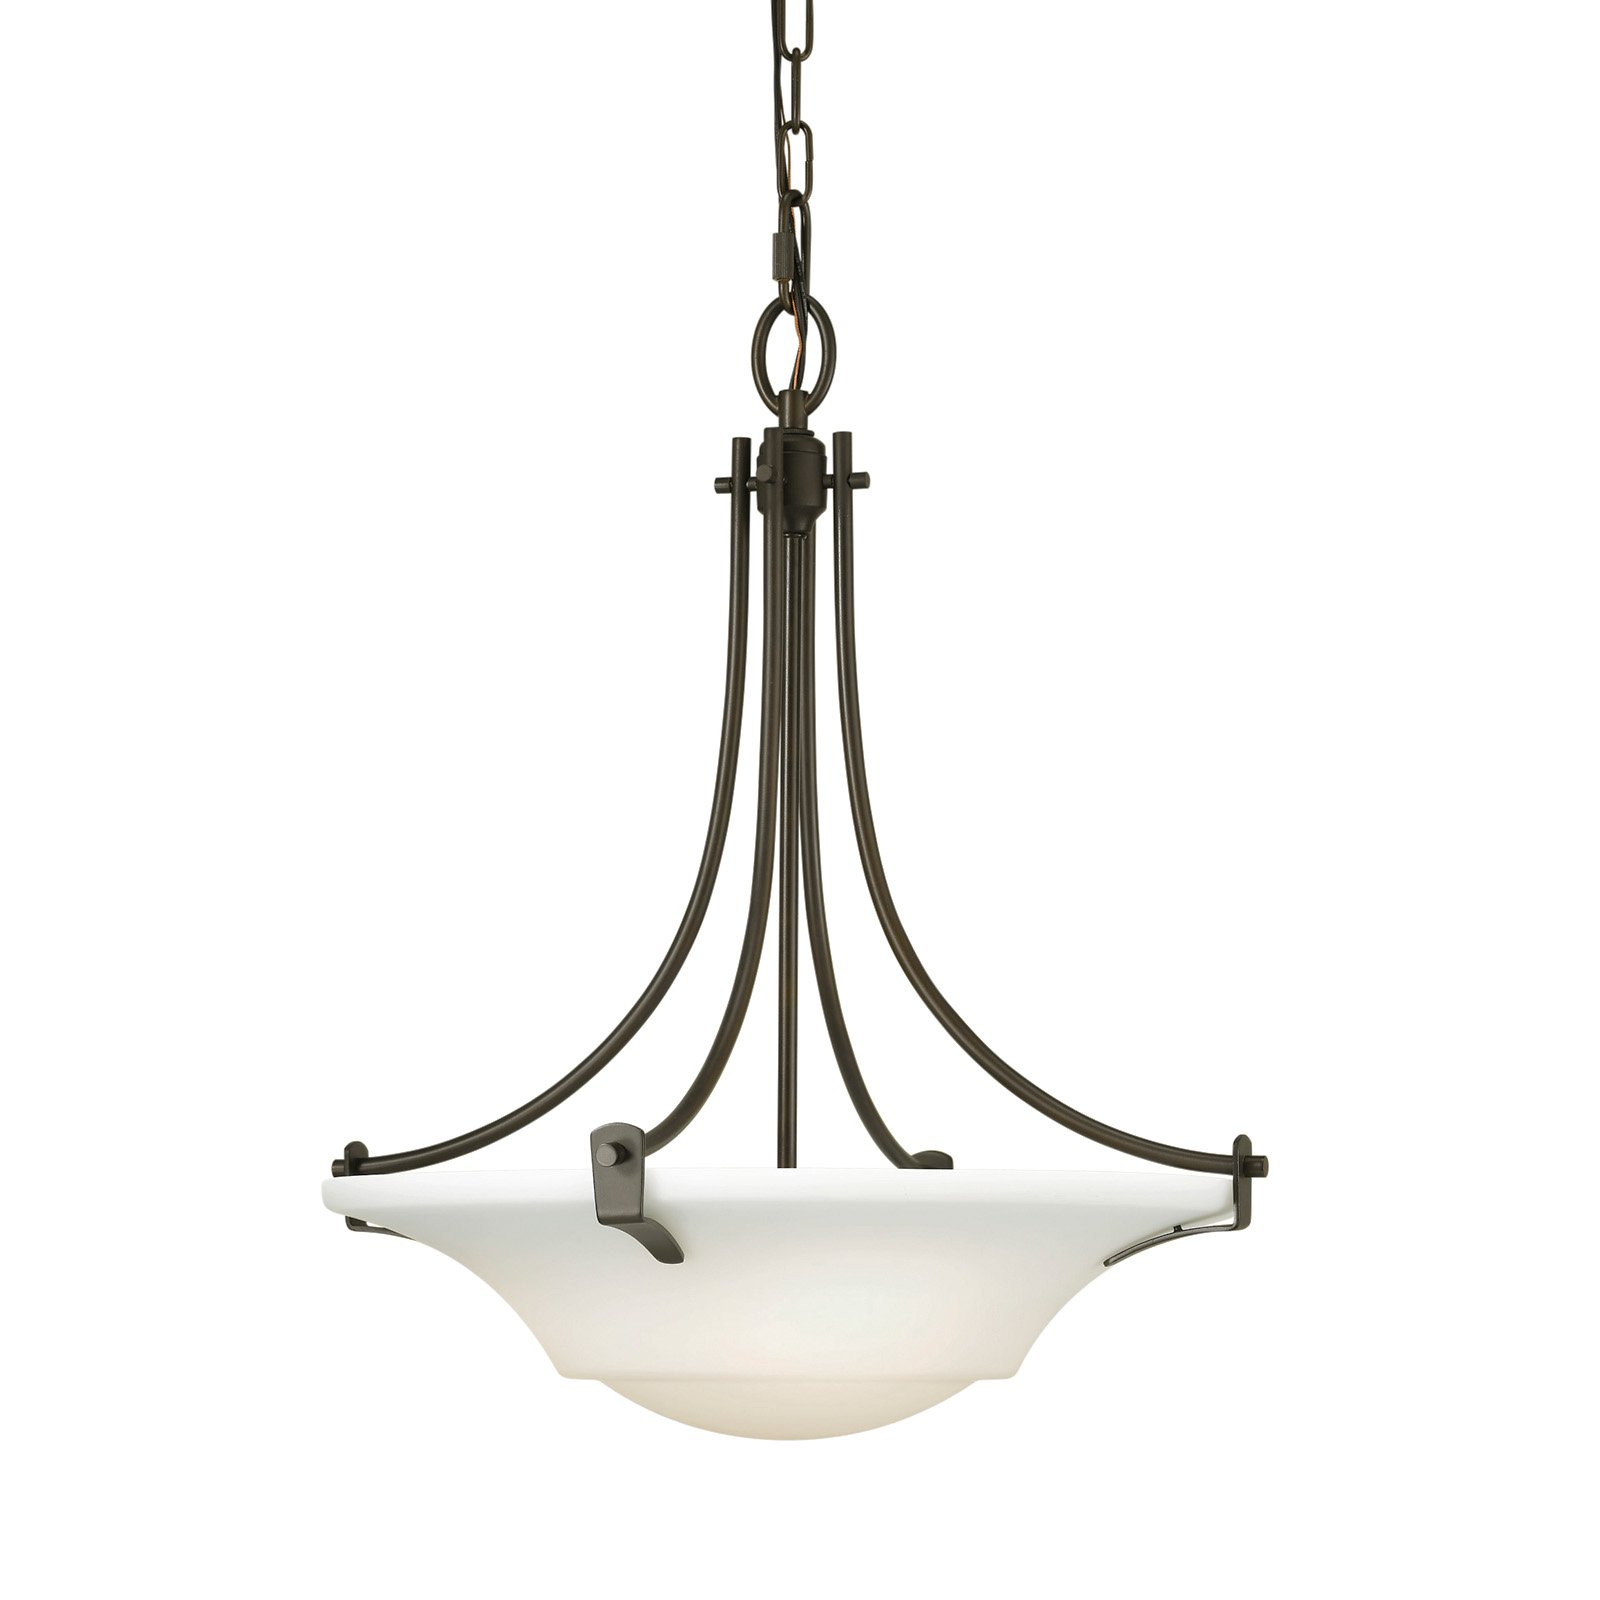 Feiss Barrington Pendant Light 18W in. Oil Rubbed Bronze by Murray Feiss